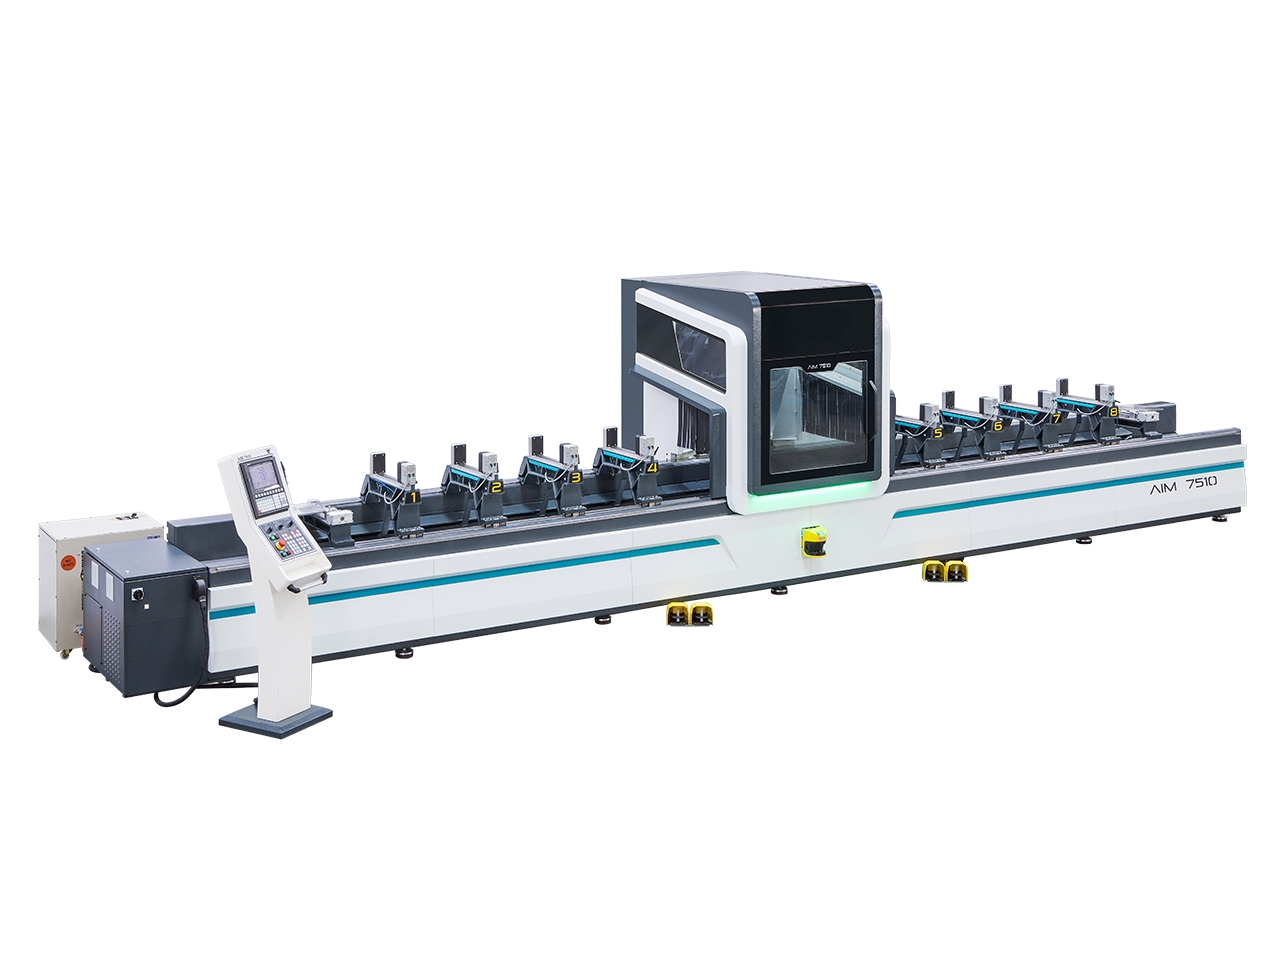 aim 7510 5 axes aluminium profile processing center cnc machine